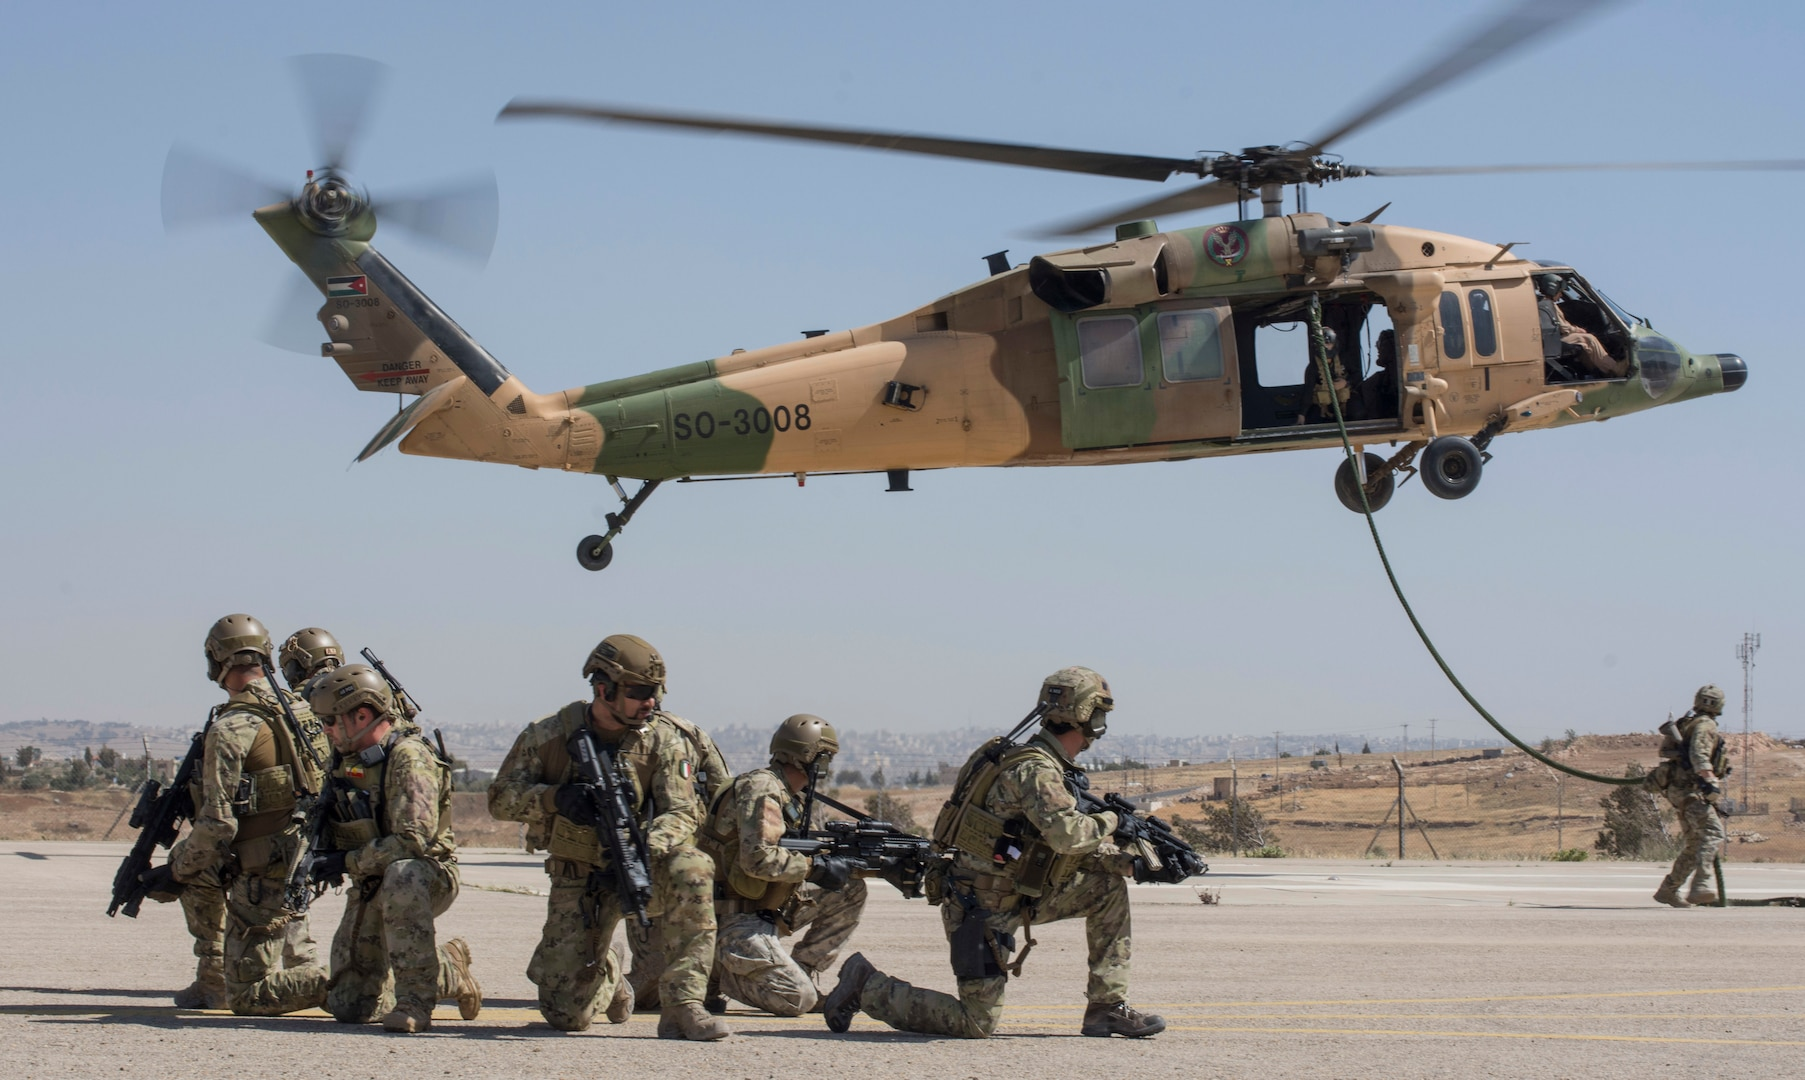 AMMAN, Jordan (May 7, 2017) Italian Airmen assigned to the 17th Special Operations Wing secure a landing pad during a fast roping exercise in Amman, Jordan during Eager Lion 2017. Eager Lion is an annual U.S. Central Command exercise in Jordan designed to strengthen military-to-military relationships between the U.S., Jordan and other international partners. This year's iteration is comprised of about 7,200 military personnel from more than 20 nations that will respond to scenarios involving border security, command and control, cyber defense and battlespace management. (U.S. Navy photo by Mass Communication Specialist 2nd Class Christopher Lange/Released)